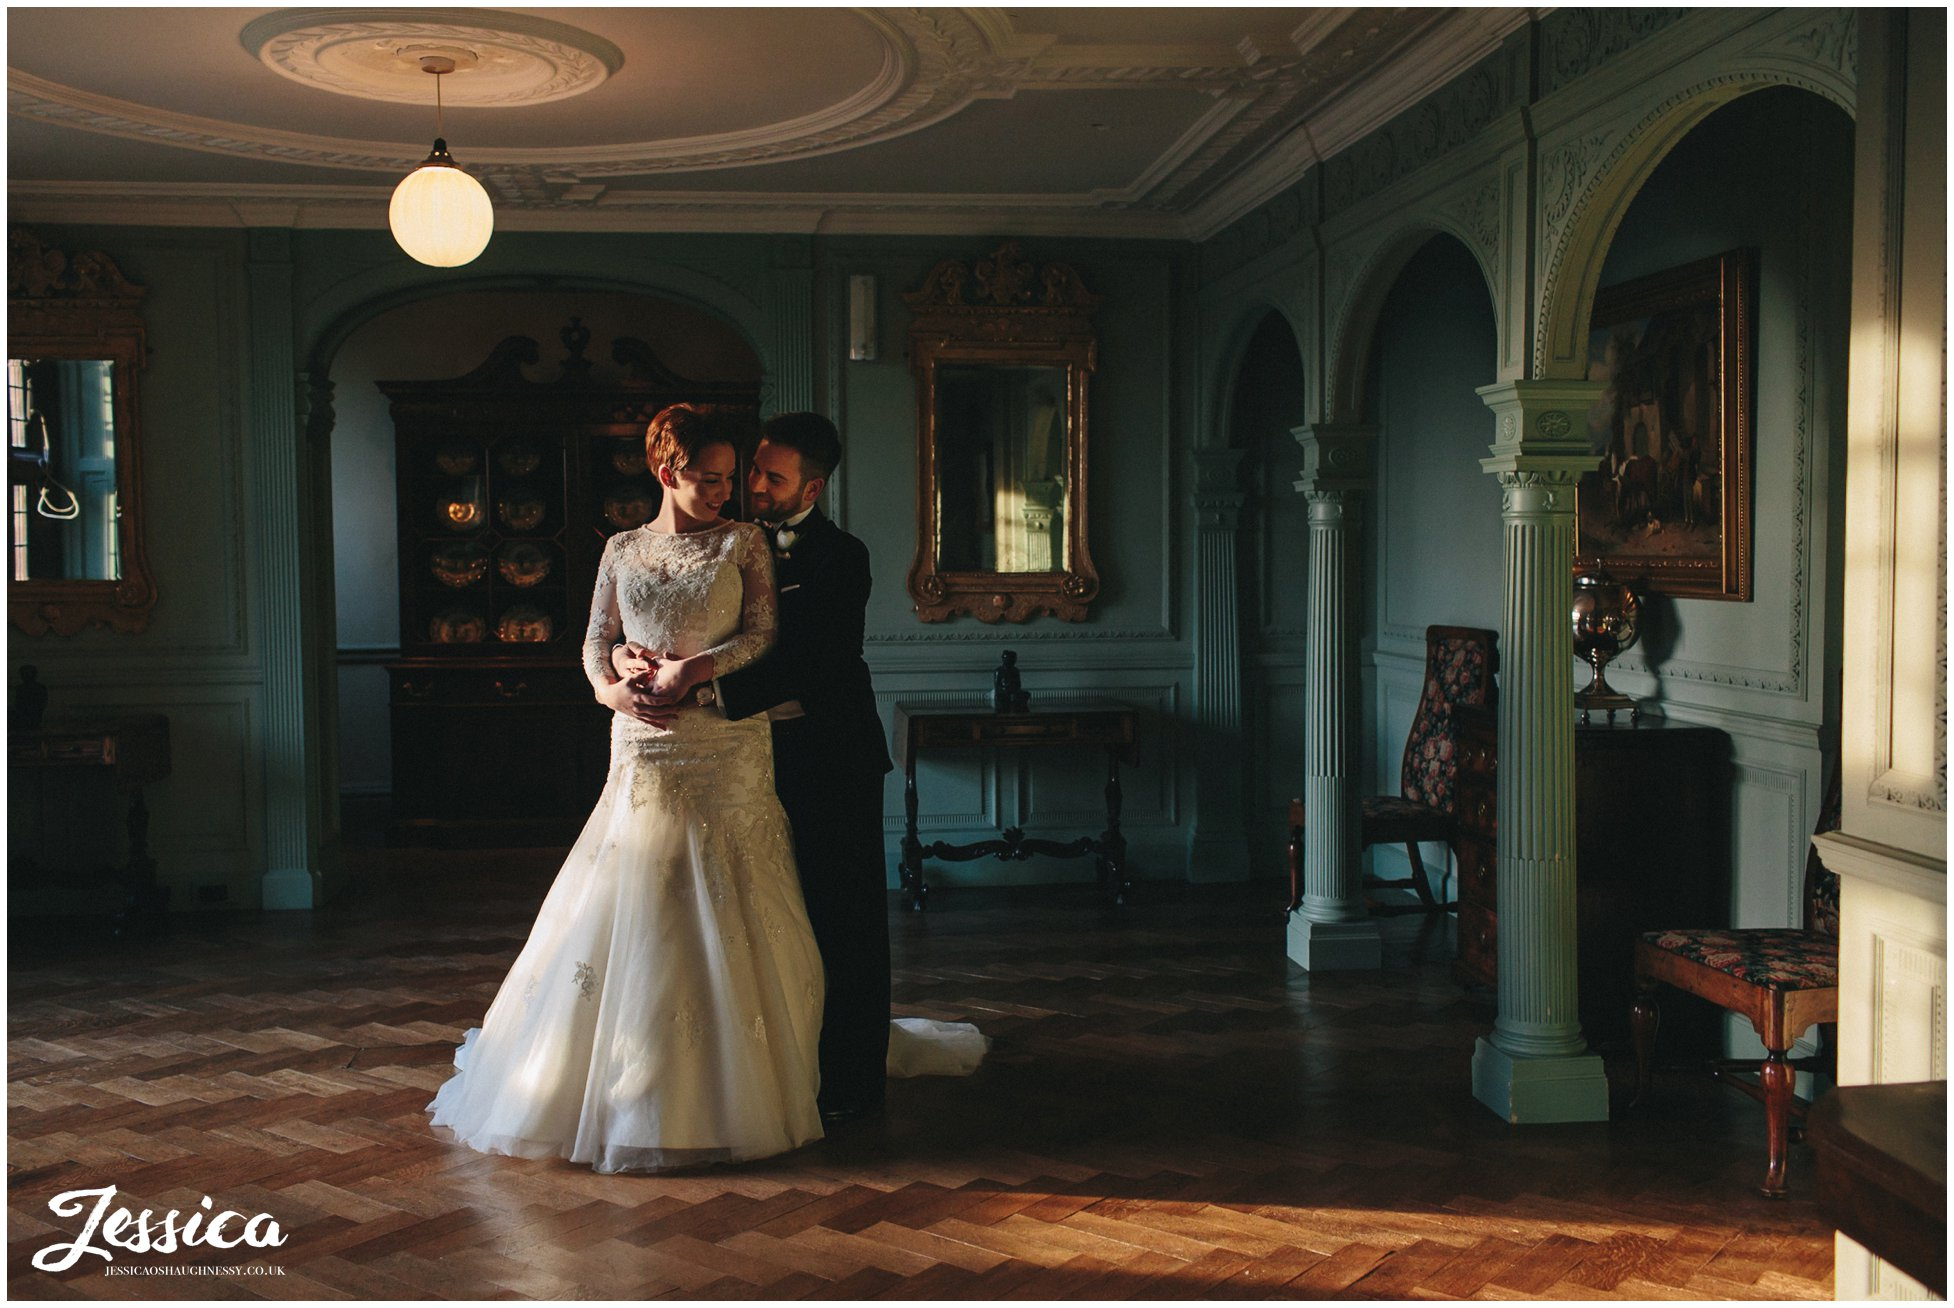 interior shot of the bride & groom stood in light pouring through the window at thornton manor